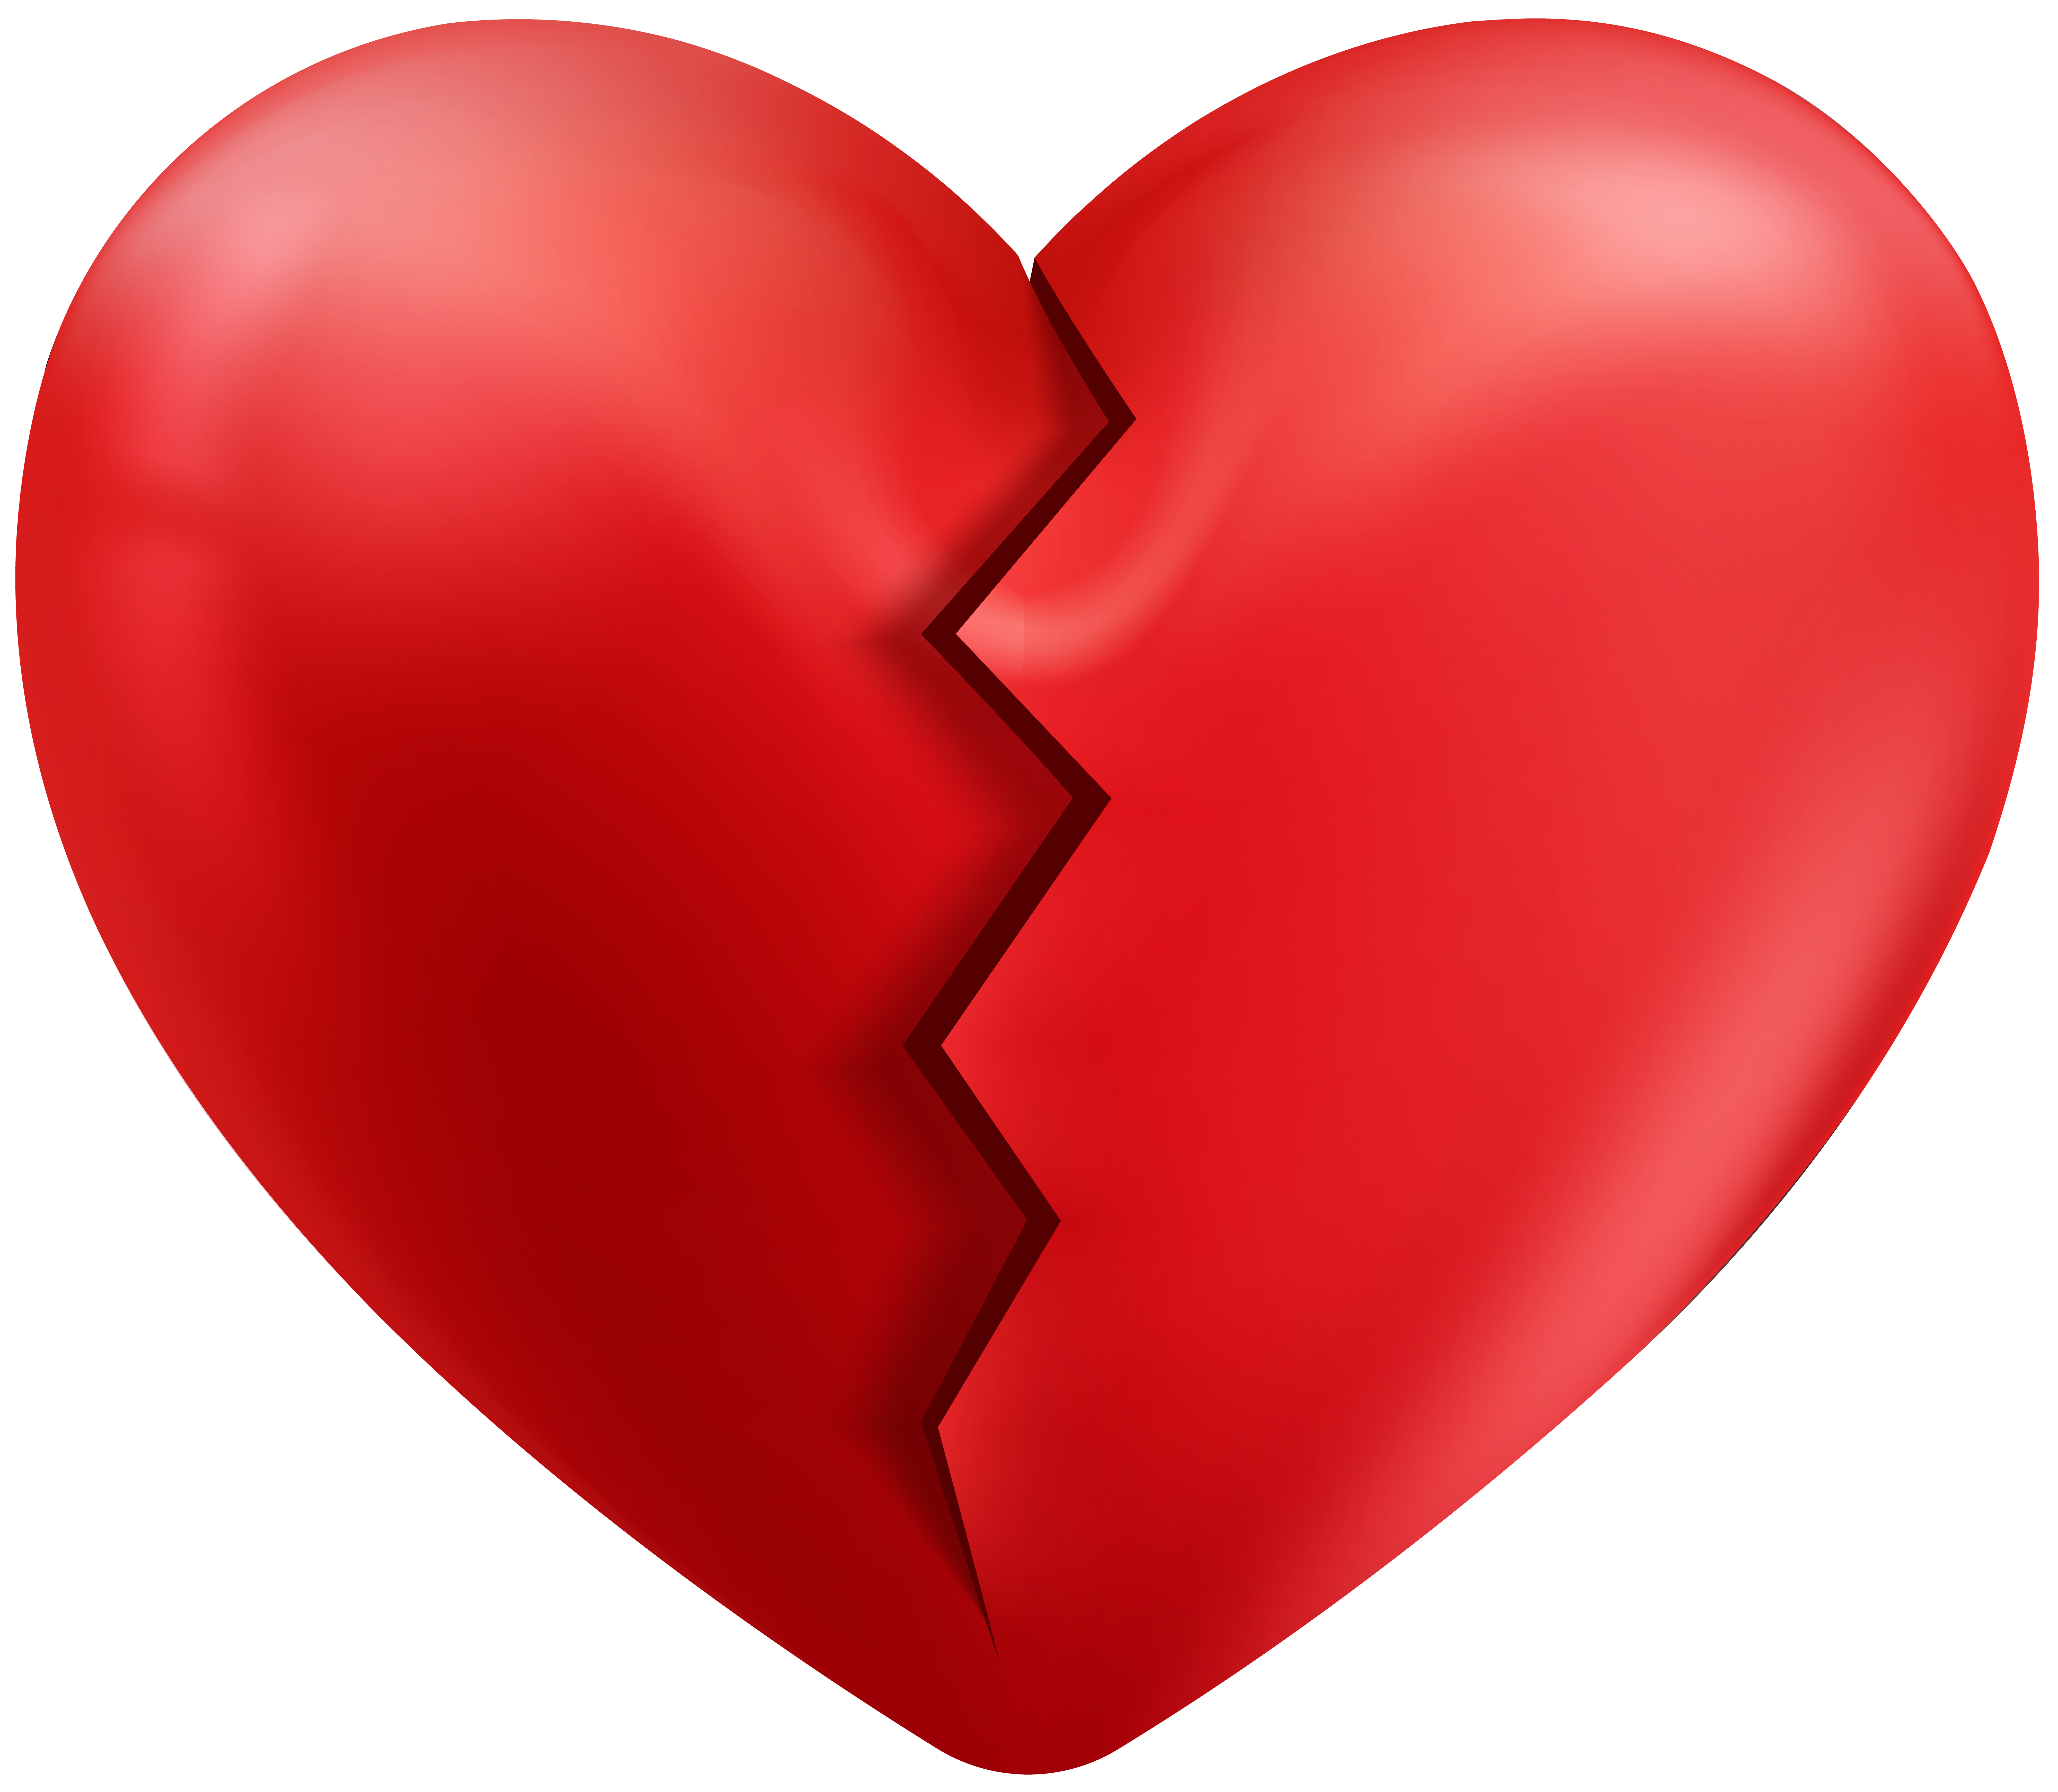 Hearts clipart strawberry. Cracked heart transparent png